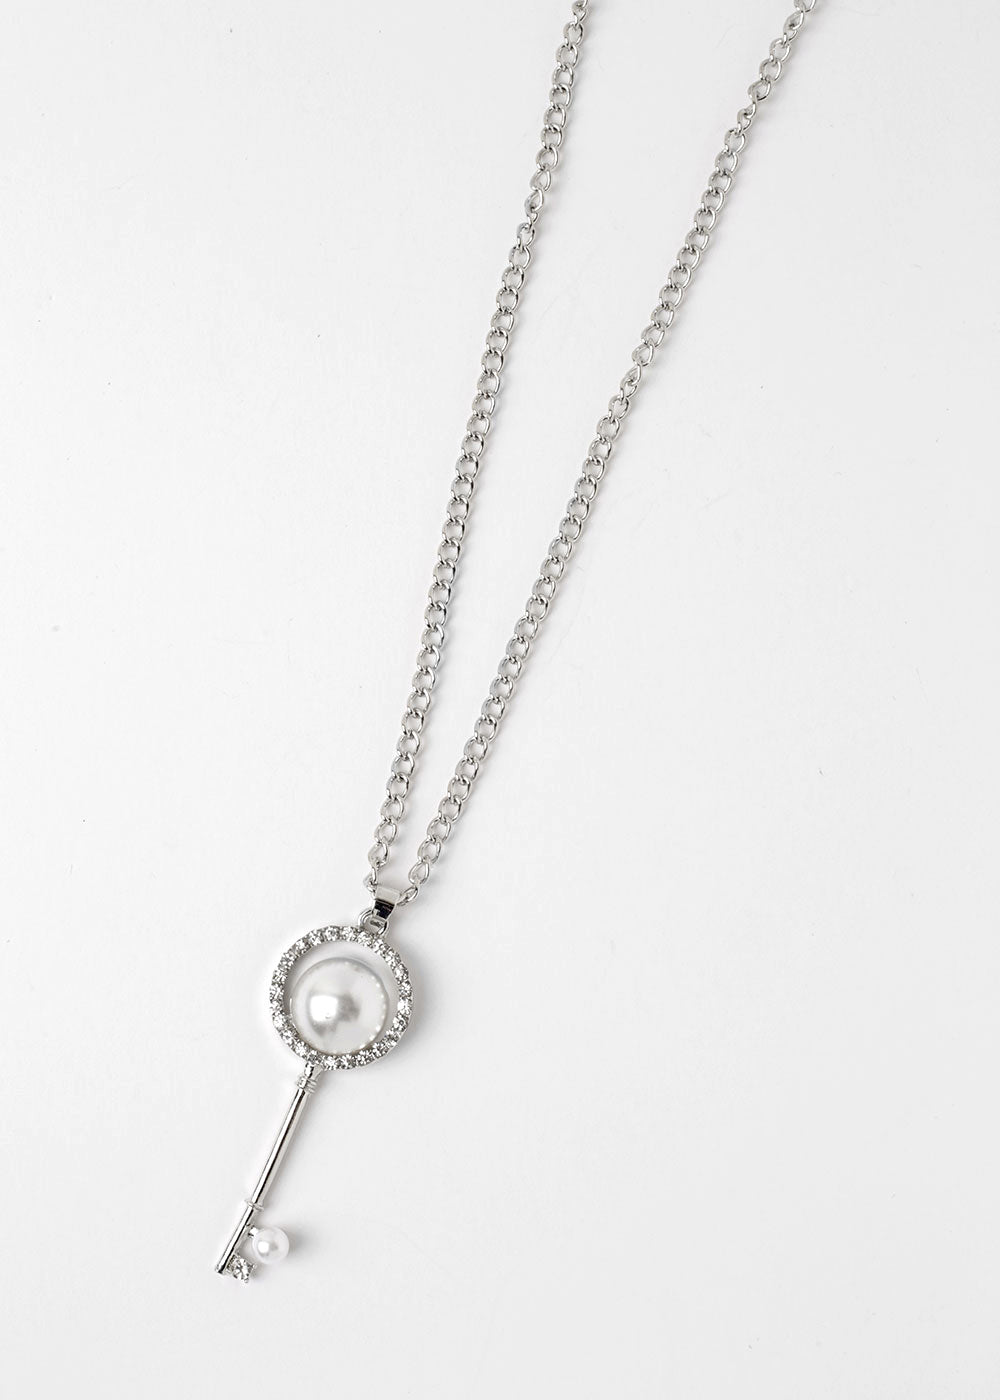 Pearl Key Necklace – Shop Miss A